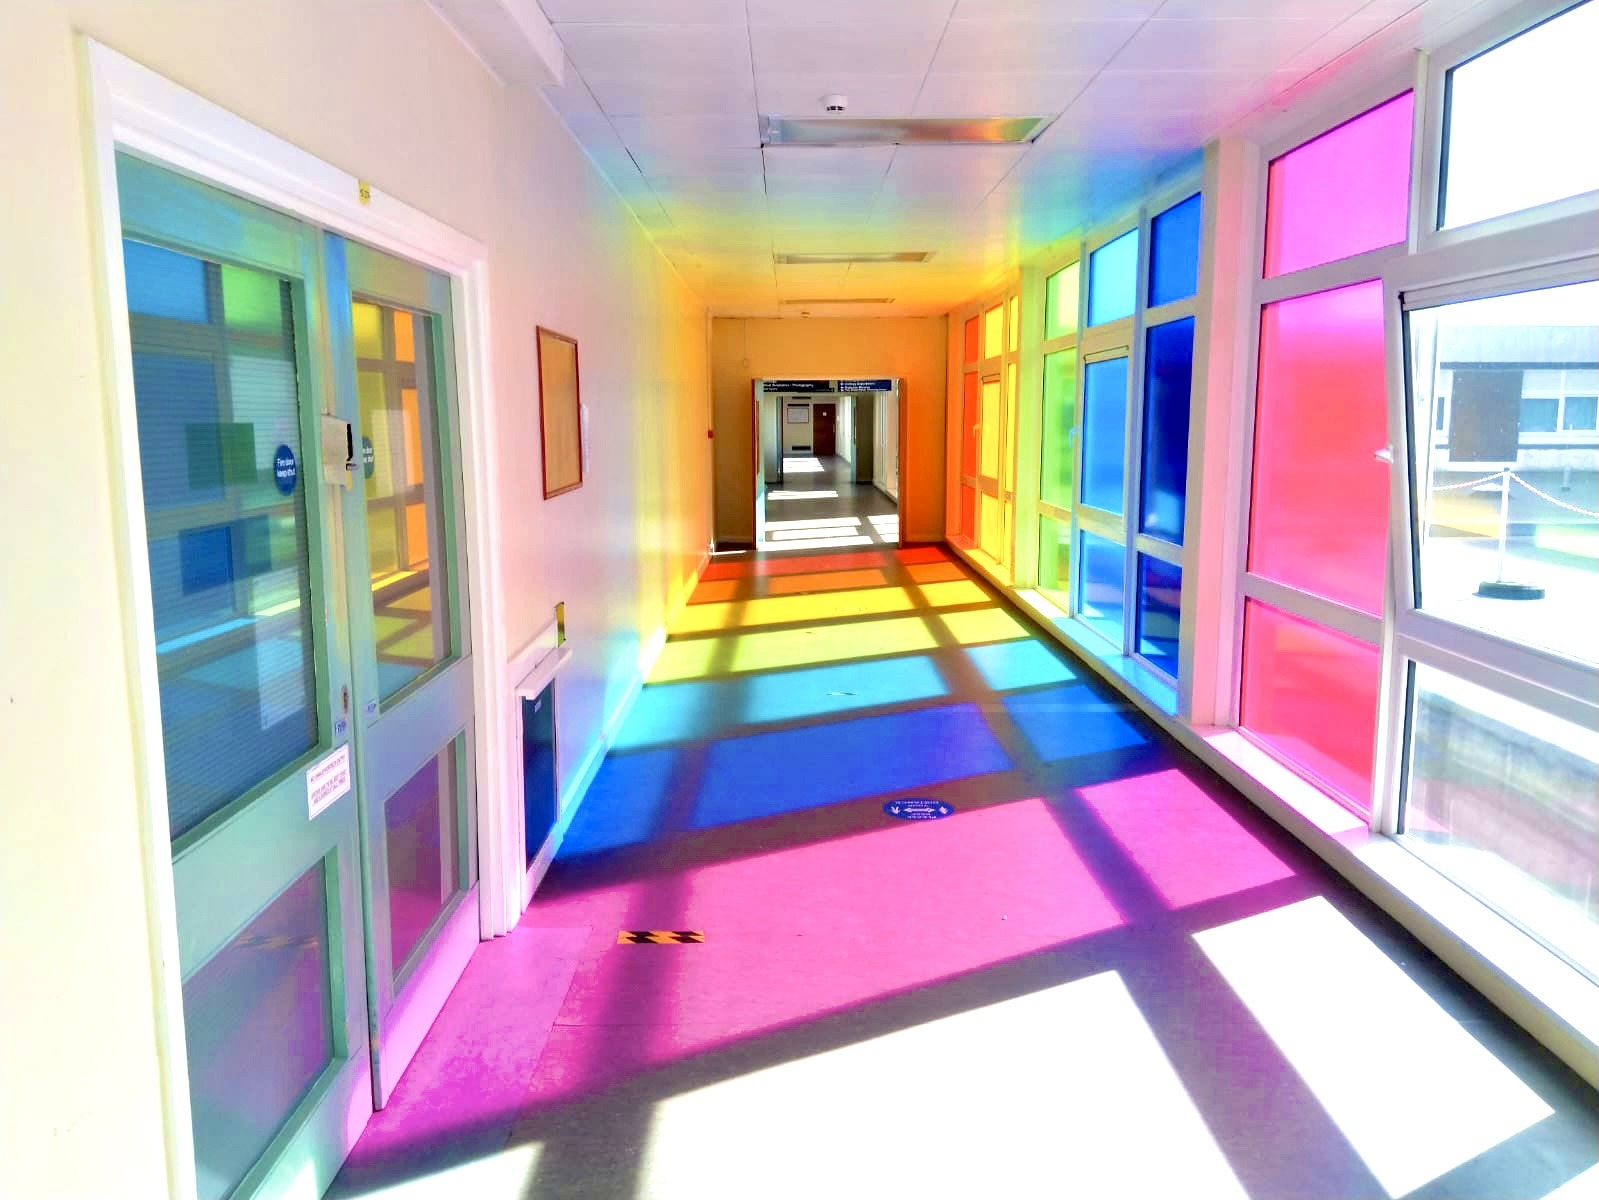 Project image for North Tees Hospital 'Support The NHS' Rainbow Corridor